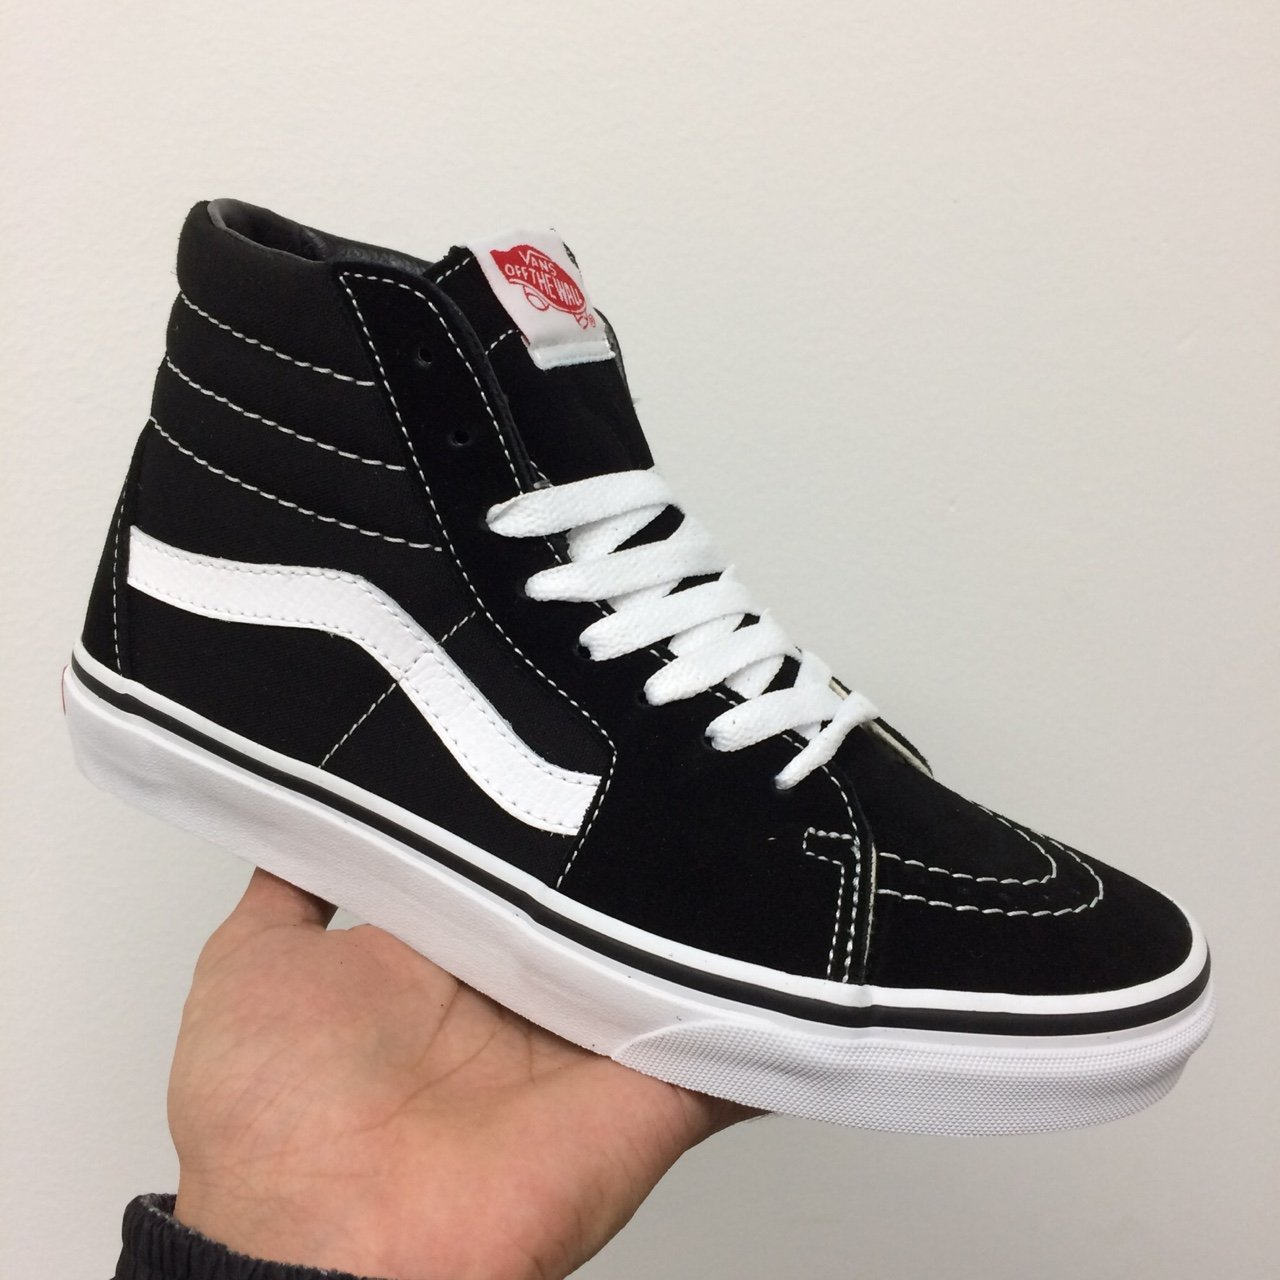 c3173cbb46 VANS SK8 HI BLACK   WHITE TRAINERS UK 8-11 sizes in sizes by - Depop